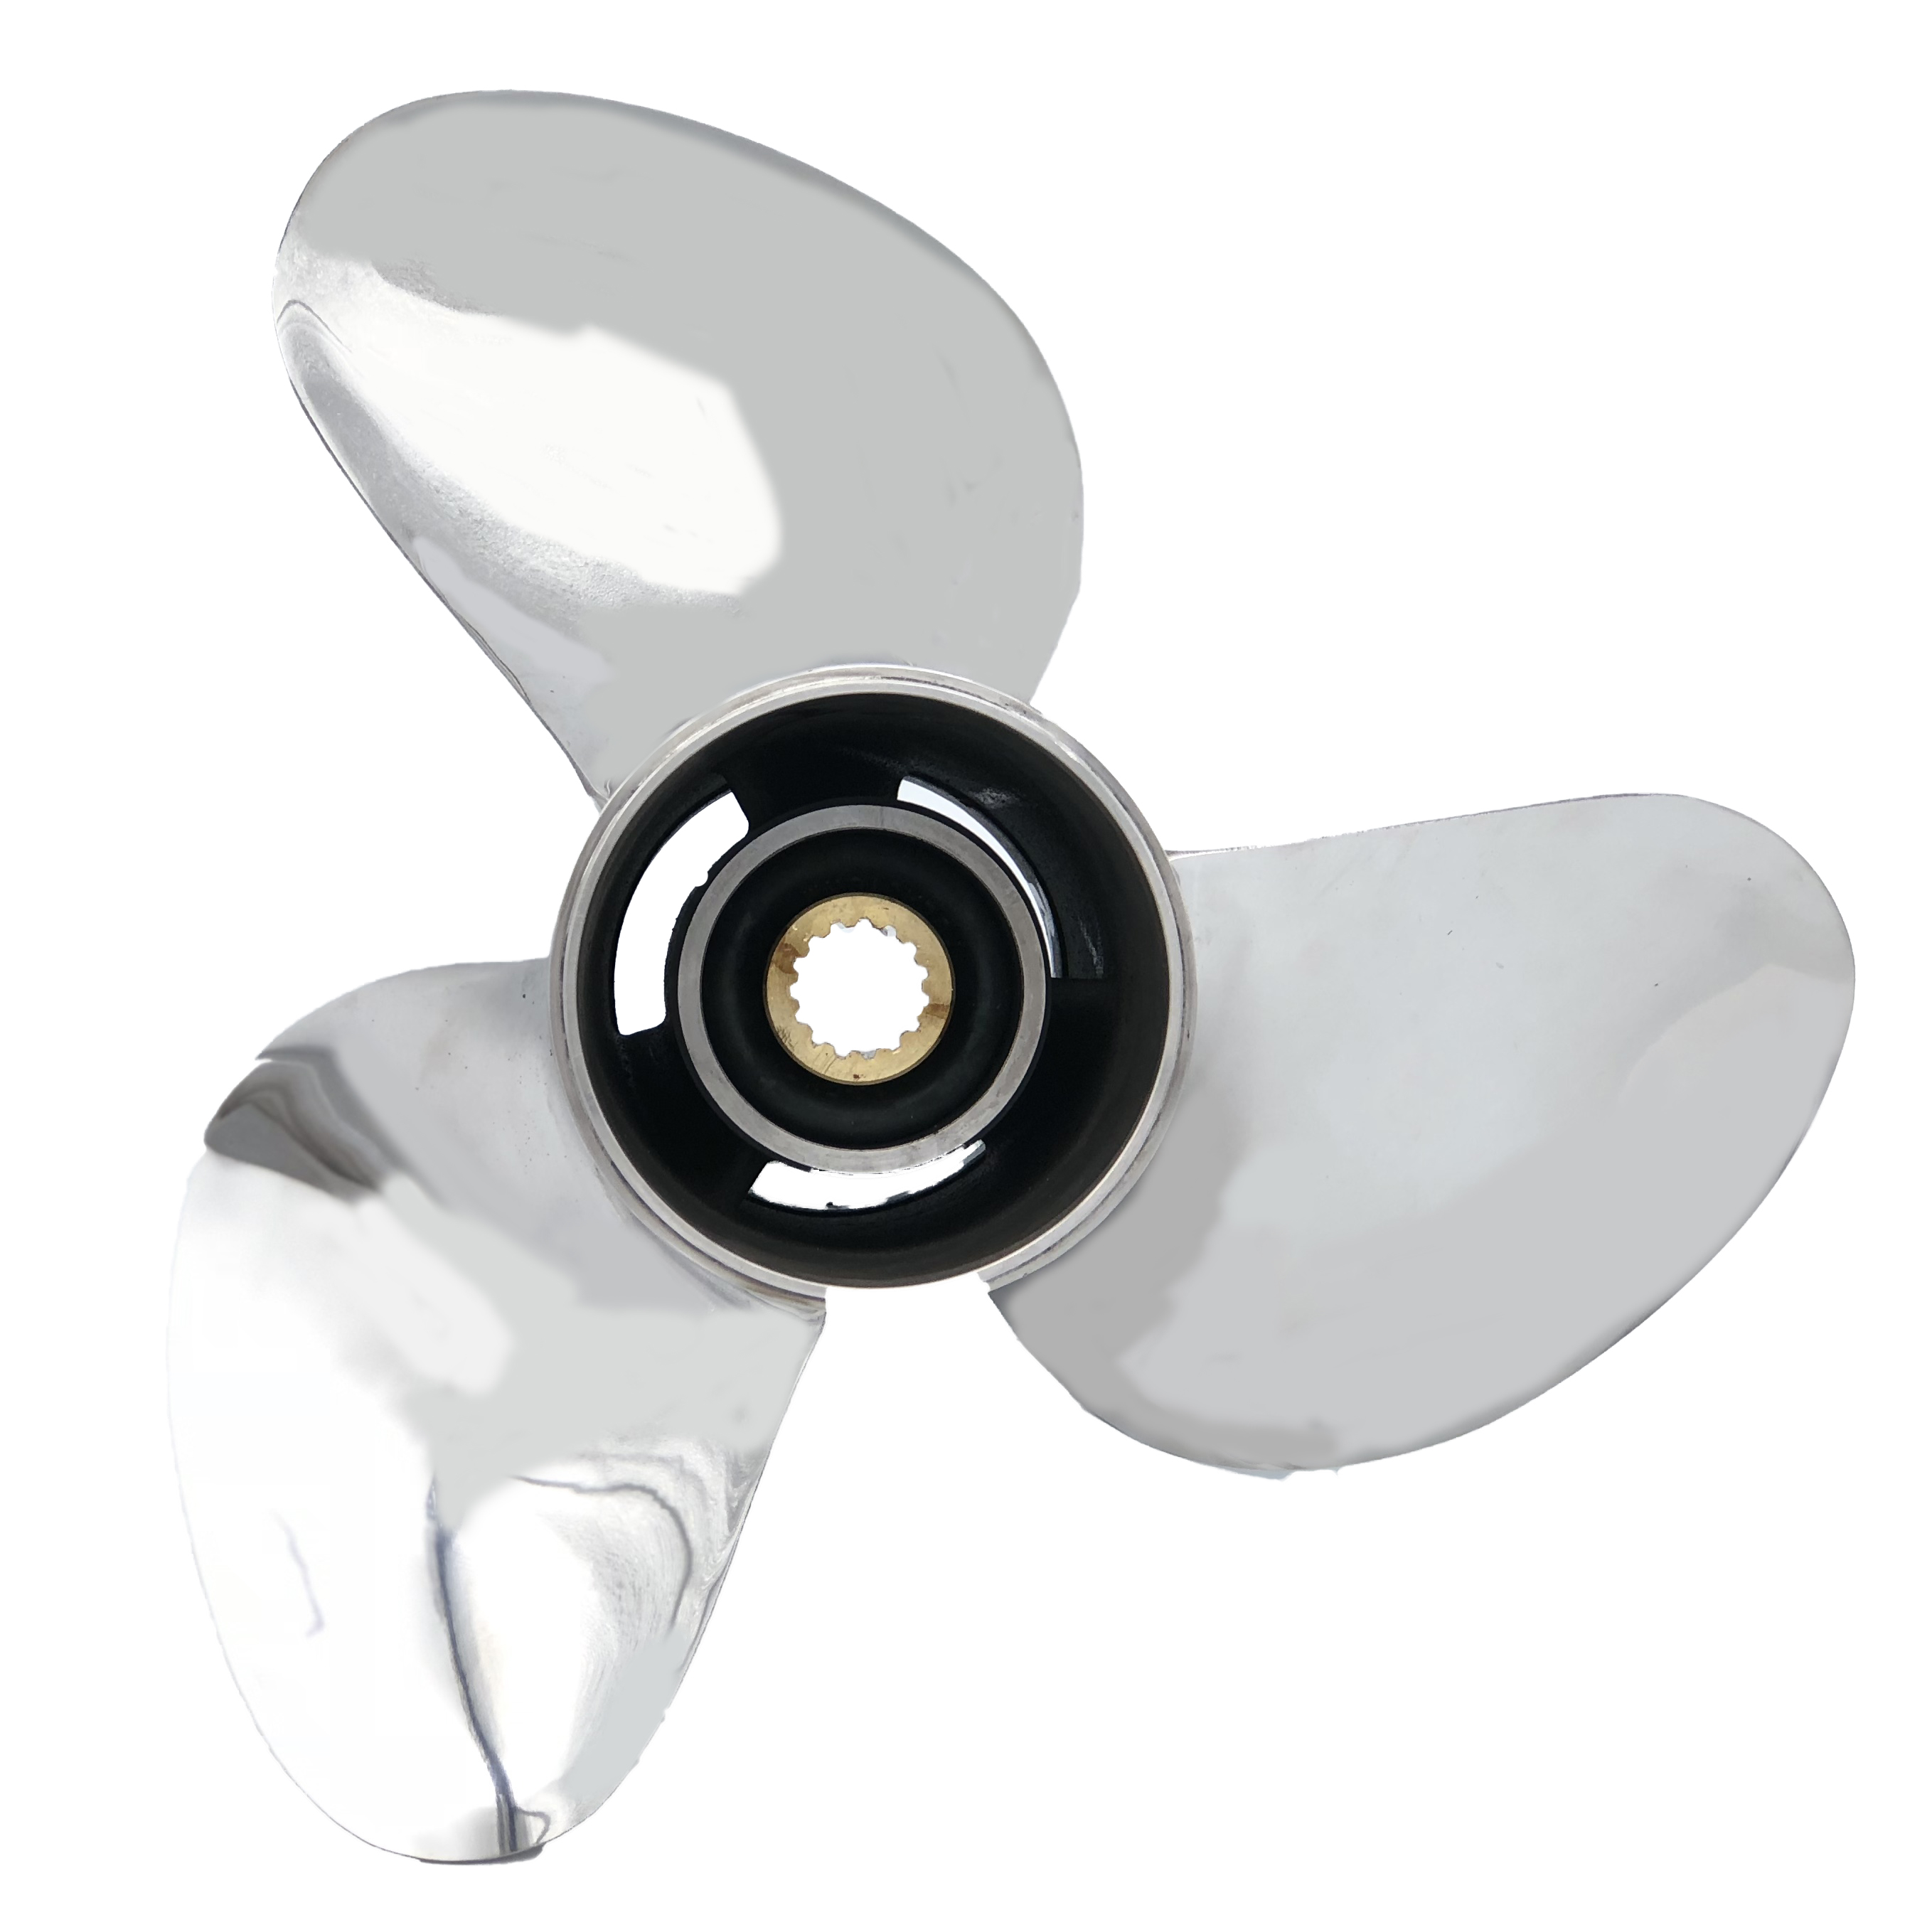 STAINLESS STEEL PROPELLERS